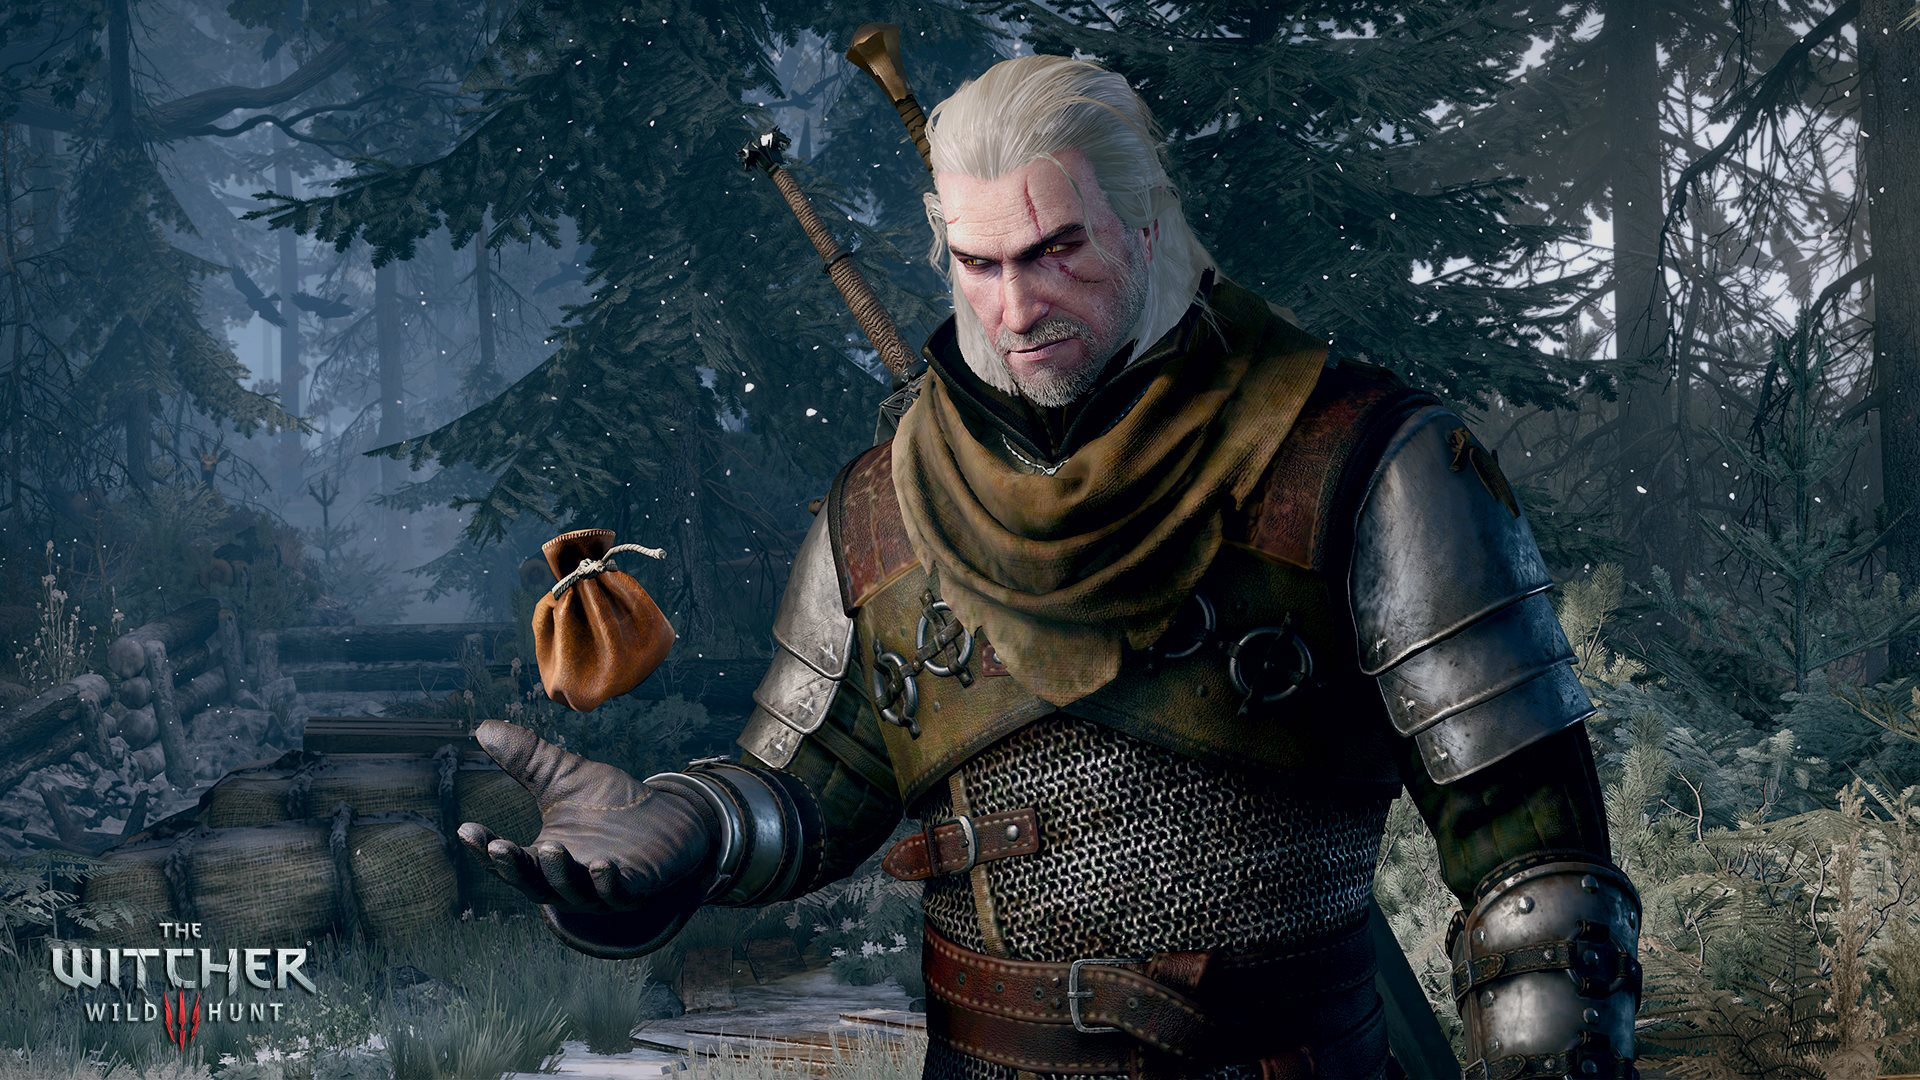 CD Projekt is officially making more Witcher and Cyberpunk games in the future